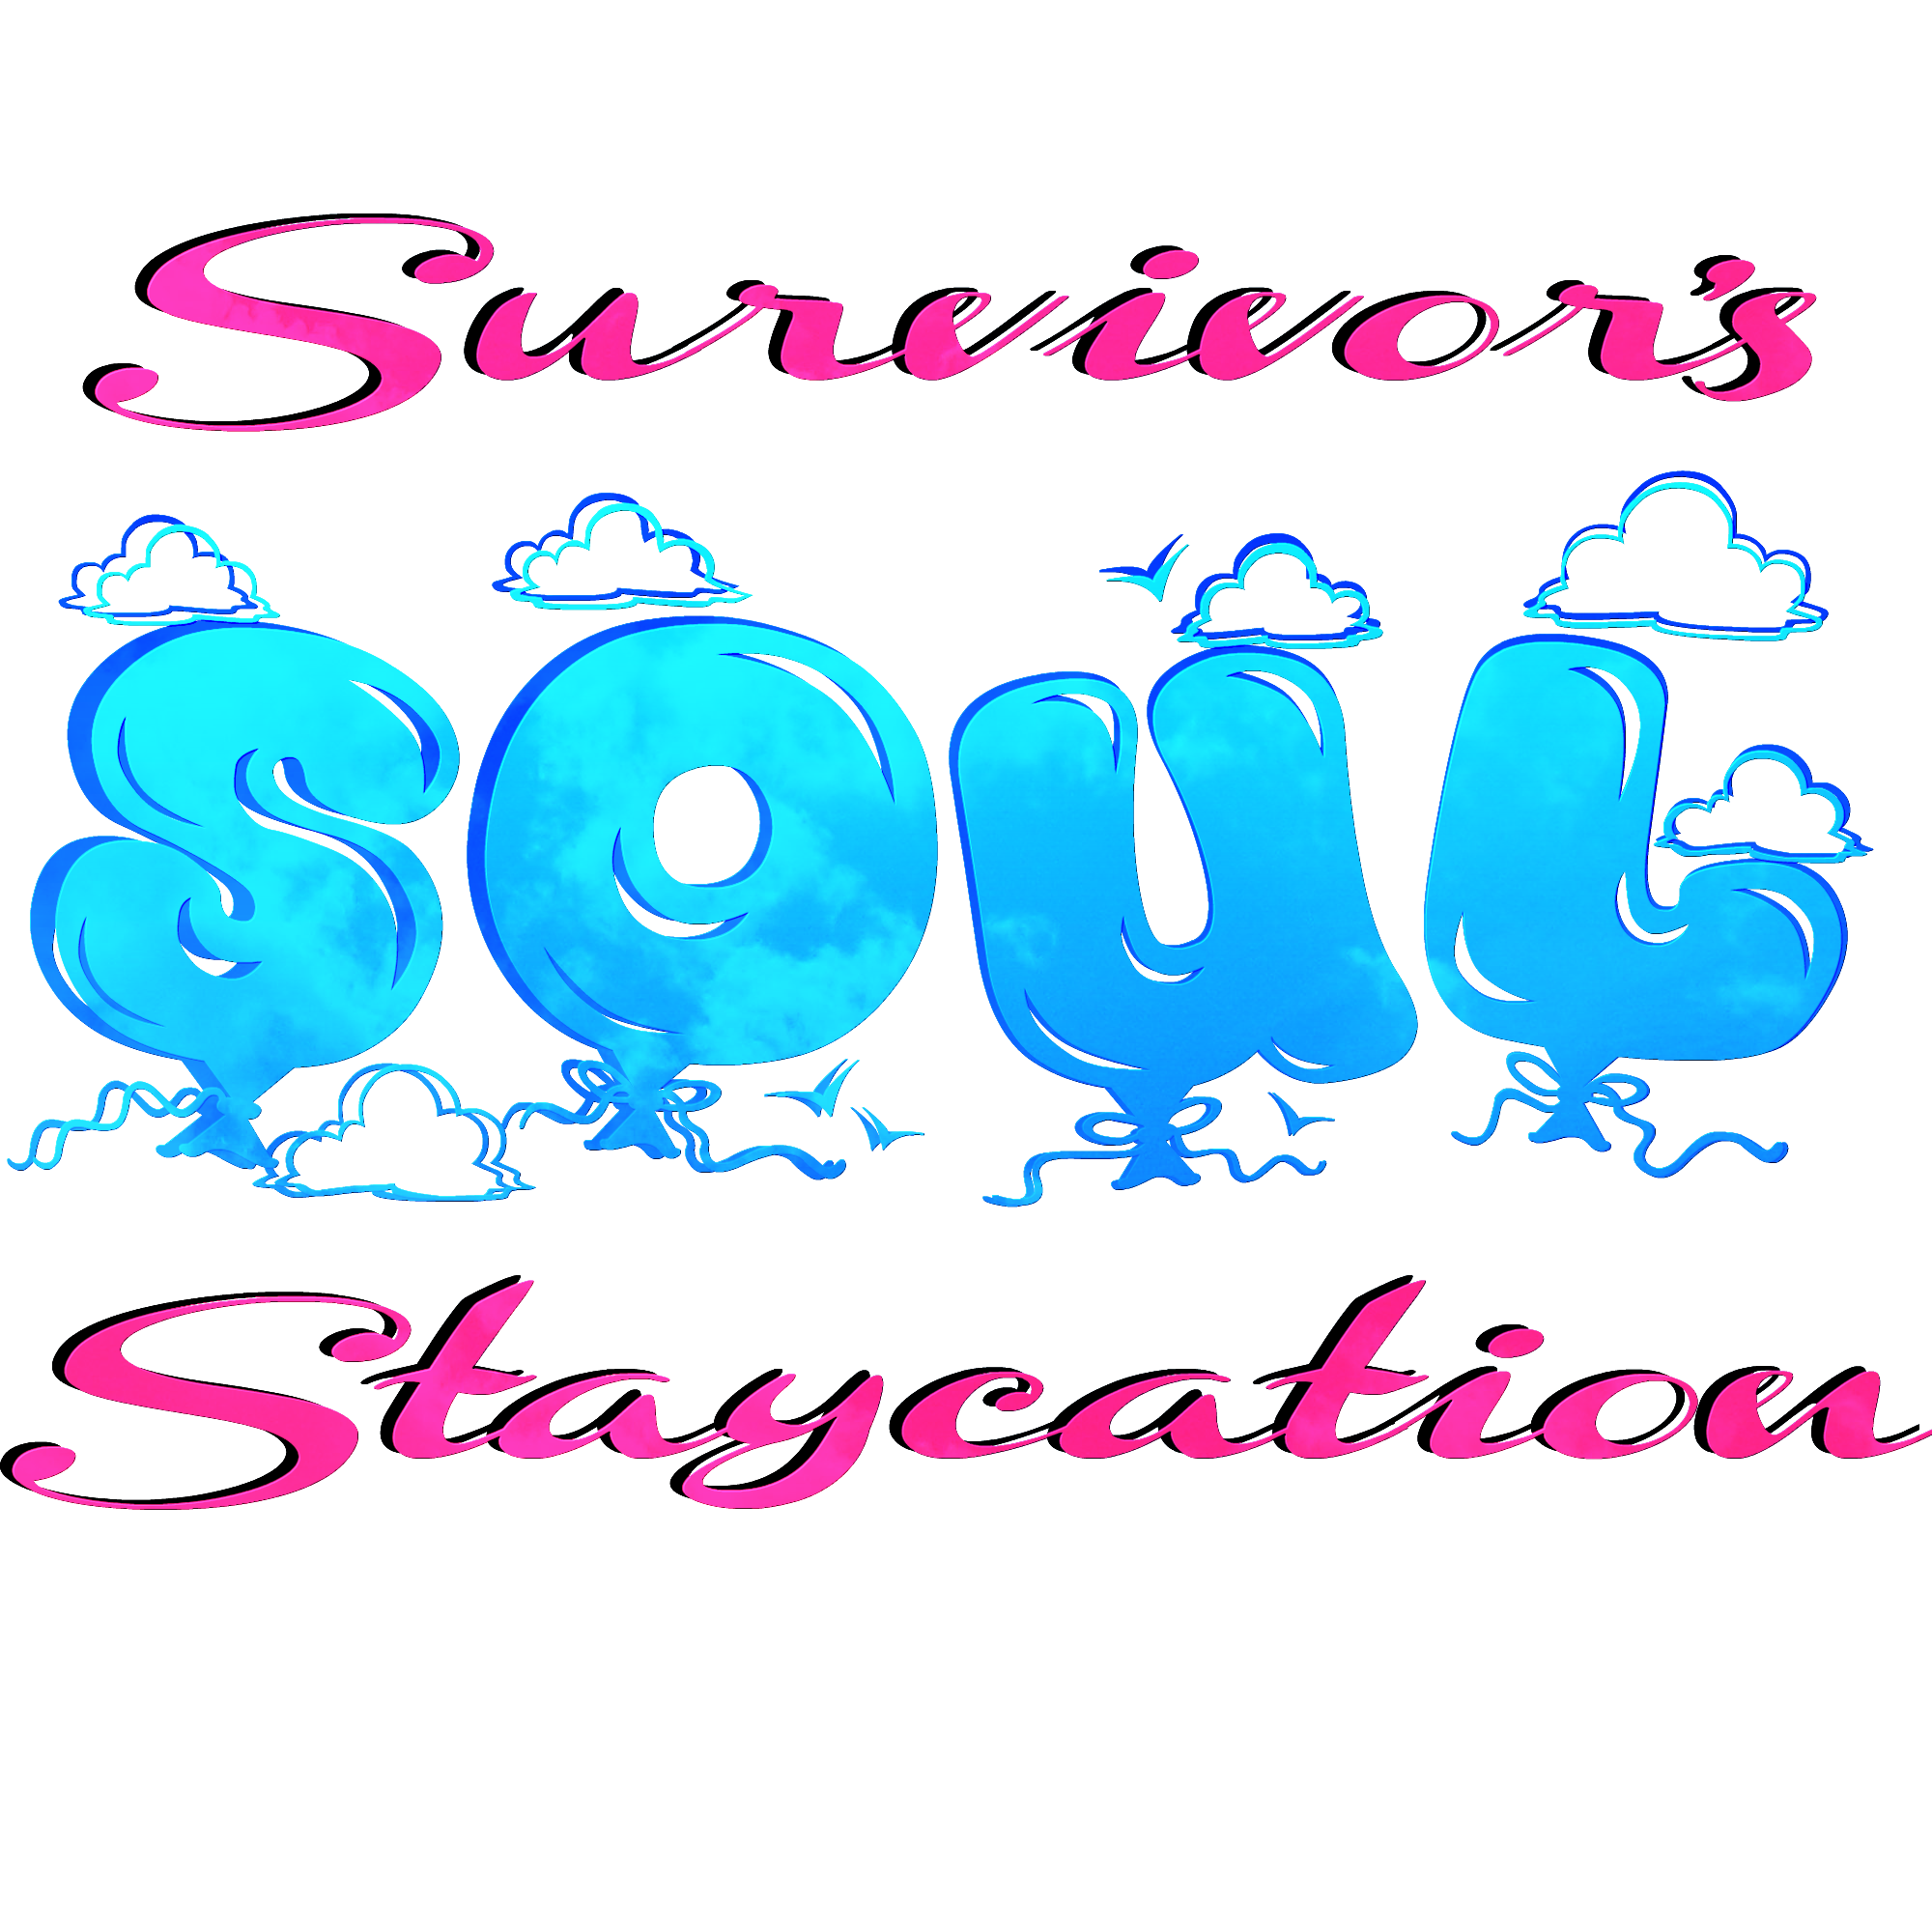 SOUL Mission #1: Evolution of the Self After Narcissistic Abuse